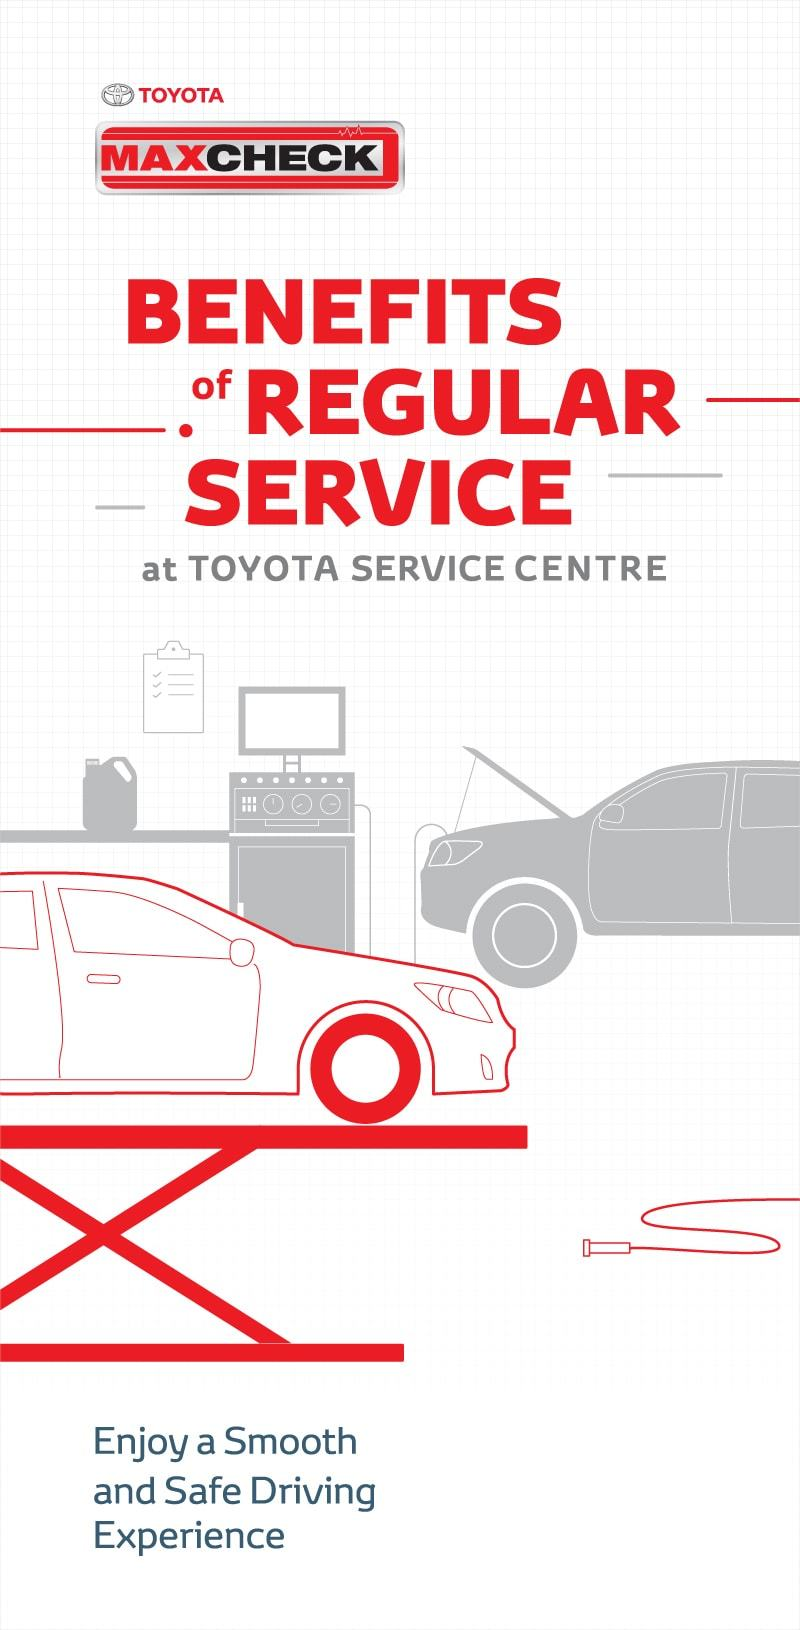 Toyota Malaysia Careplus 2004 Corolla Interior Fuse Diagram With Our Extensive Inspections Carried Out By Trained Technicians You Are Guaranteed Absolute Peace Of Mind